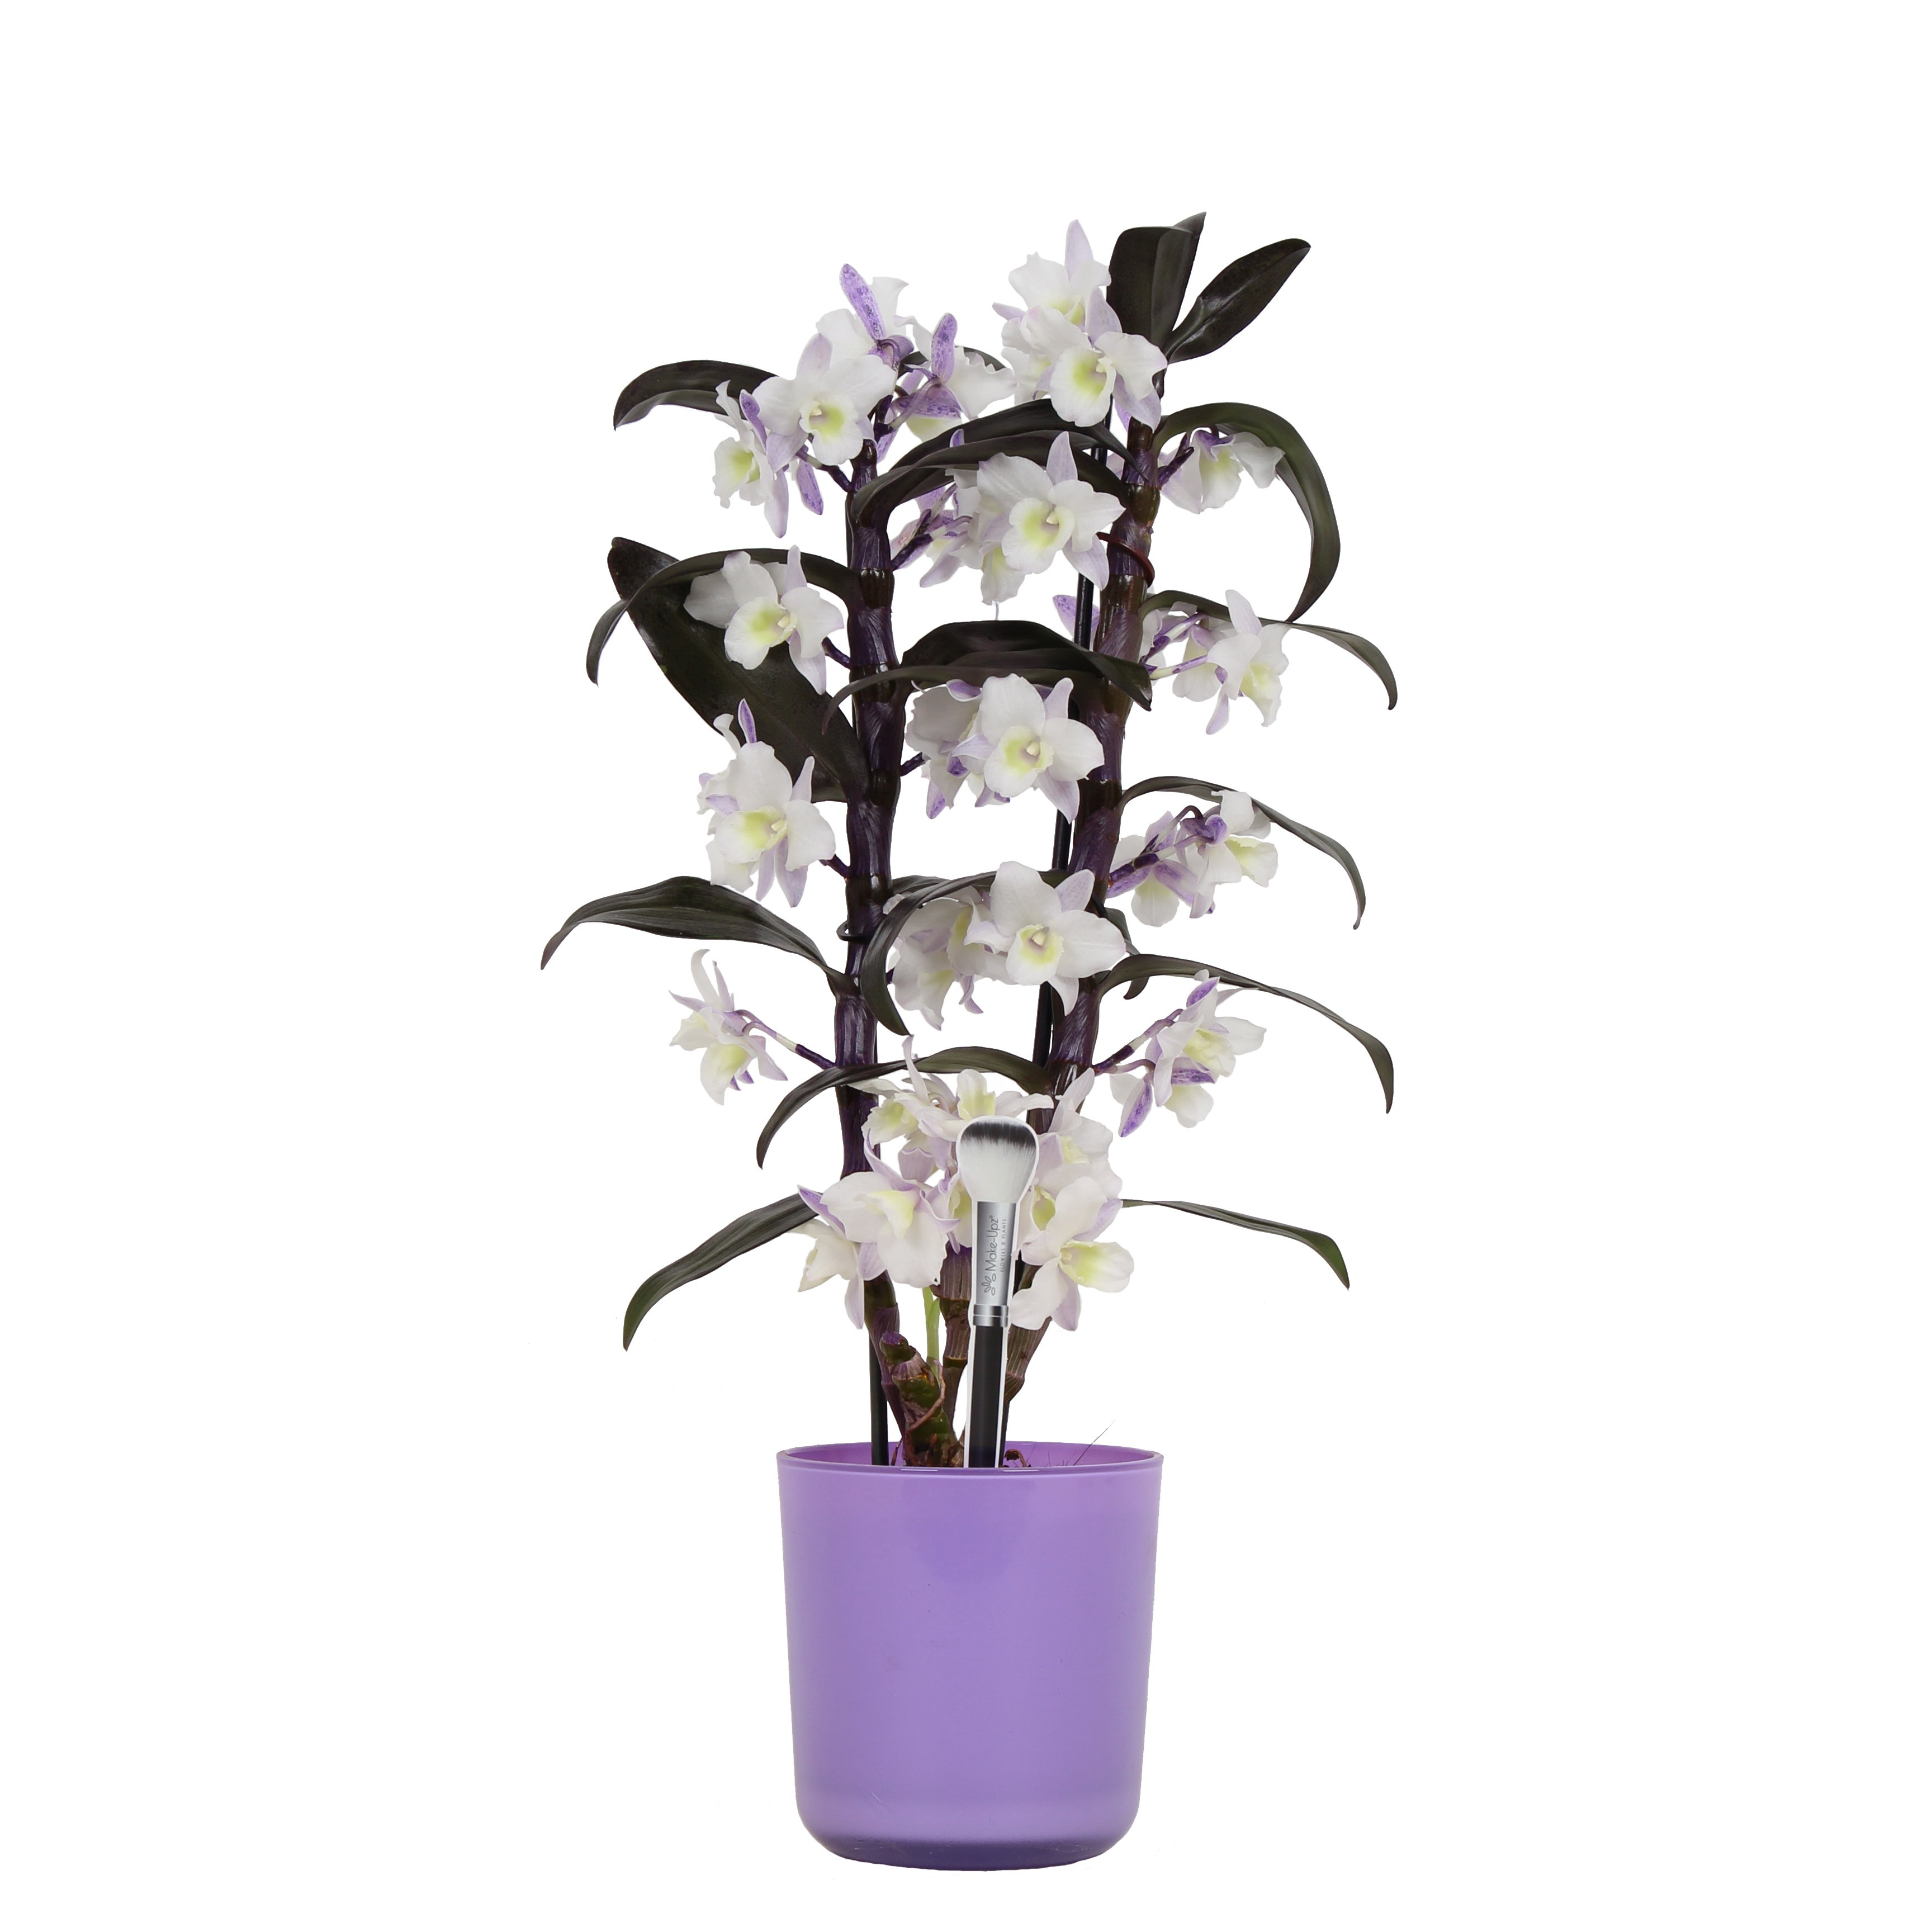 Orchid – Bamboo Orchid in violet plant pot as a set – Height: 50 cm, 2 stems, white-purple flowers